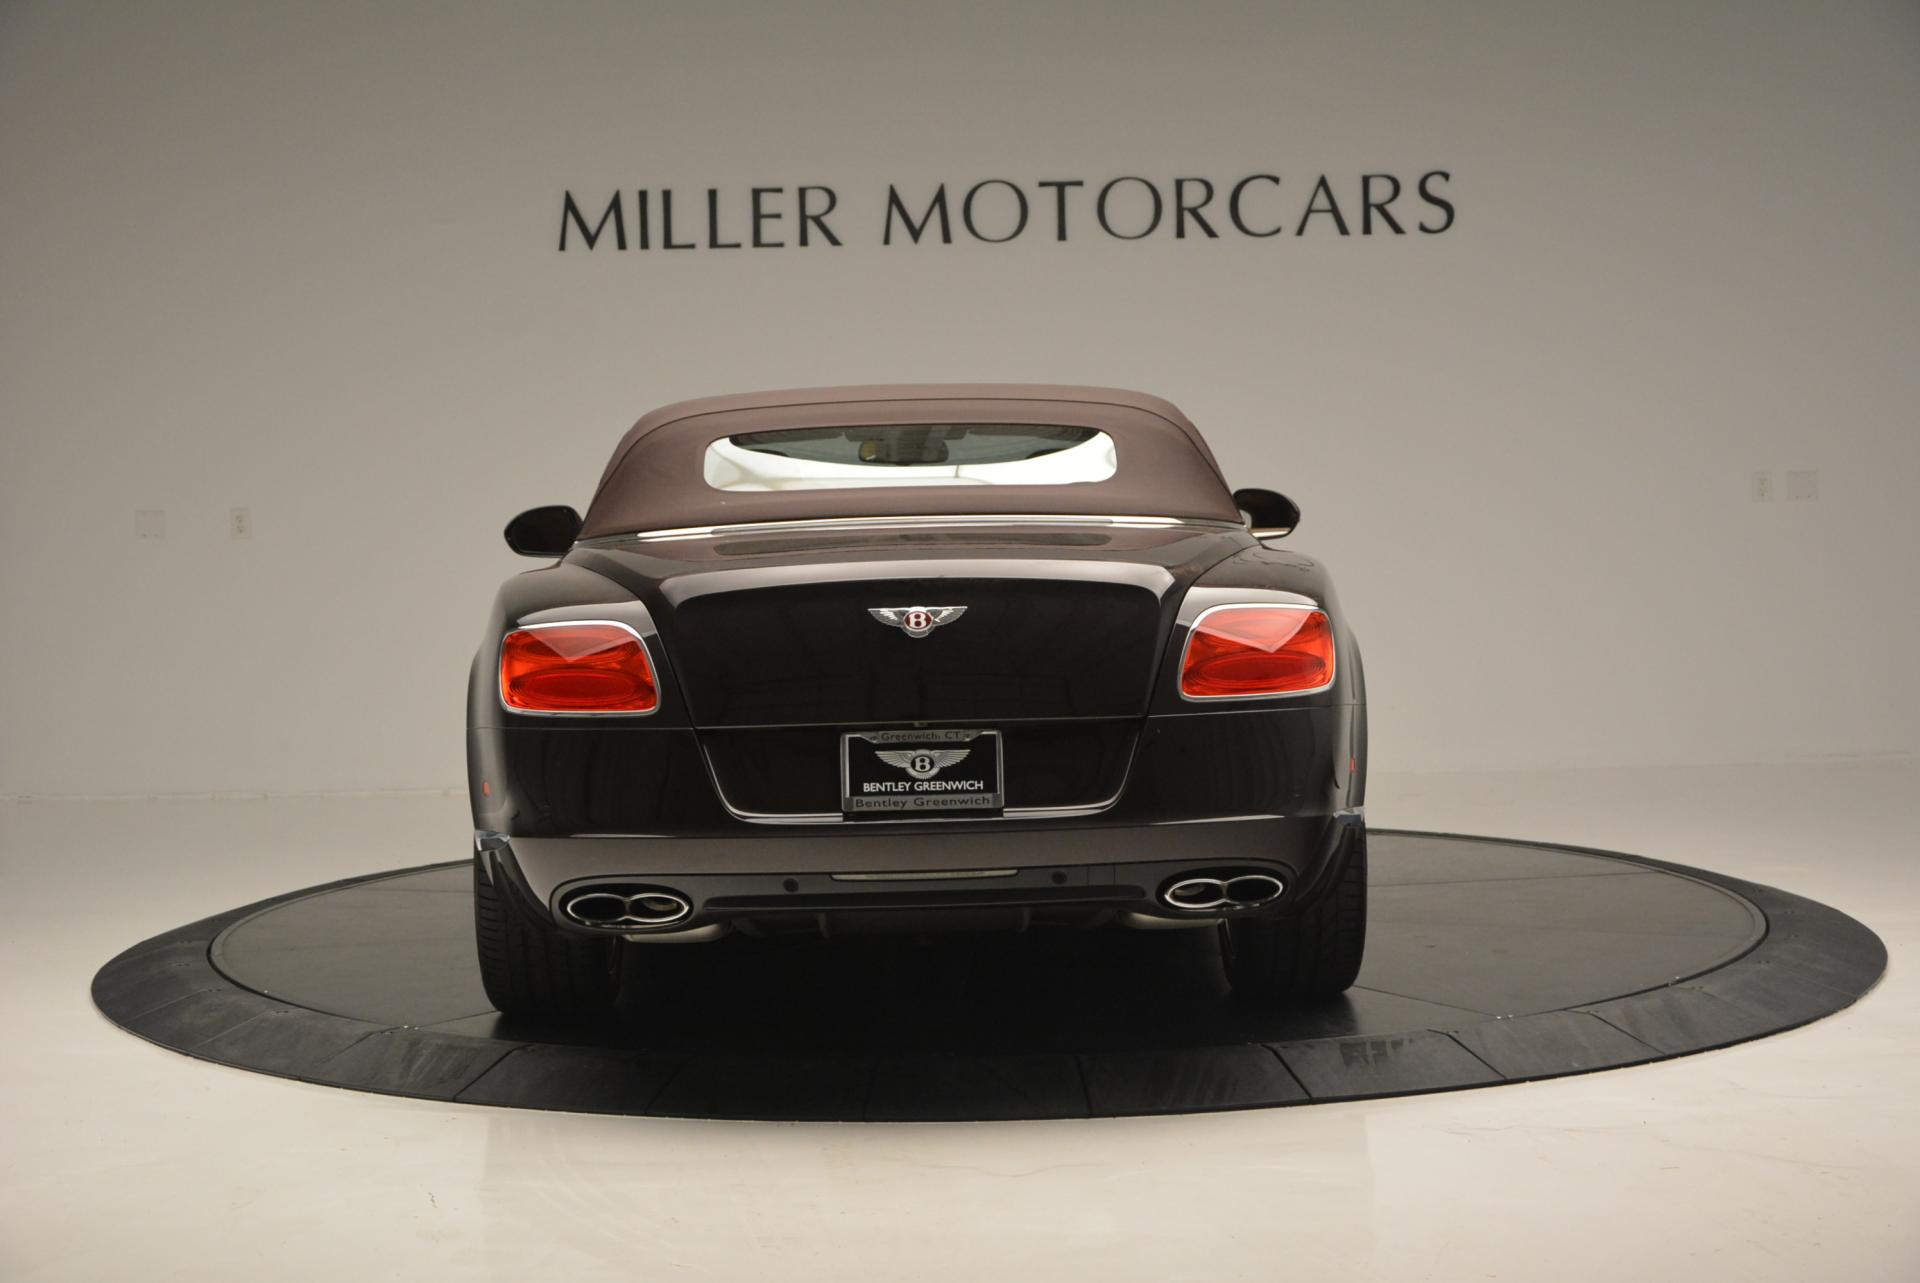 Used 2013 Bentley Continental GTC V8  For Sale In Greenwich, CT. Alfa Romeo of Greenwich, 7059 498_p19